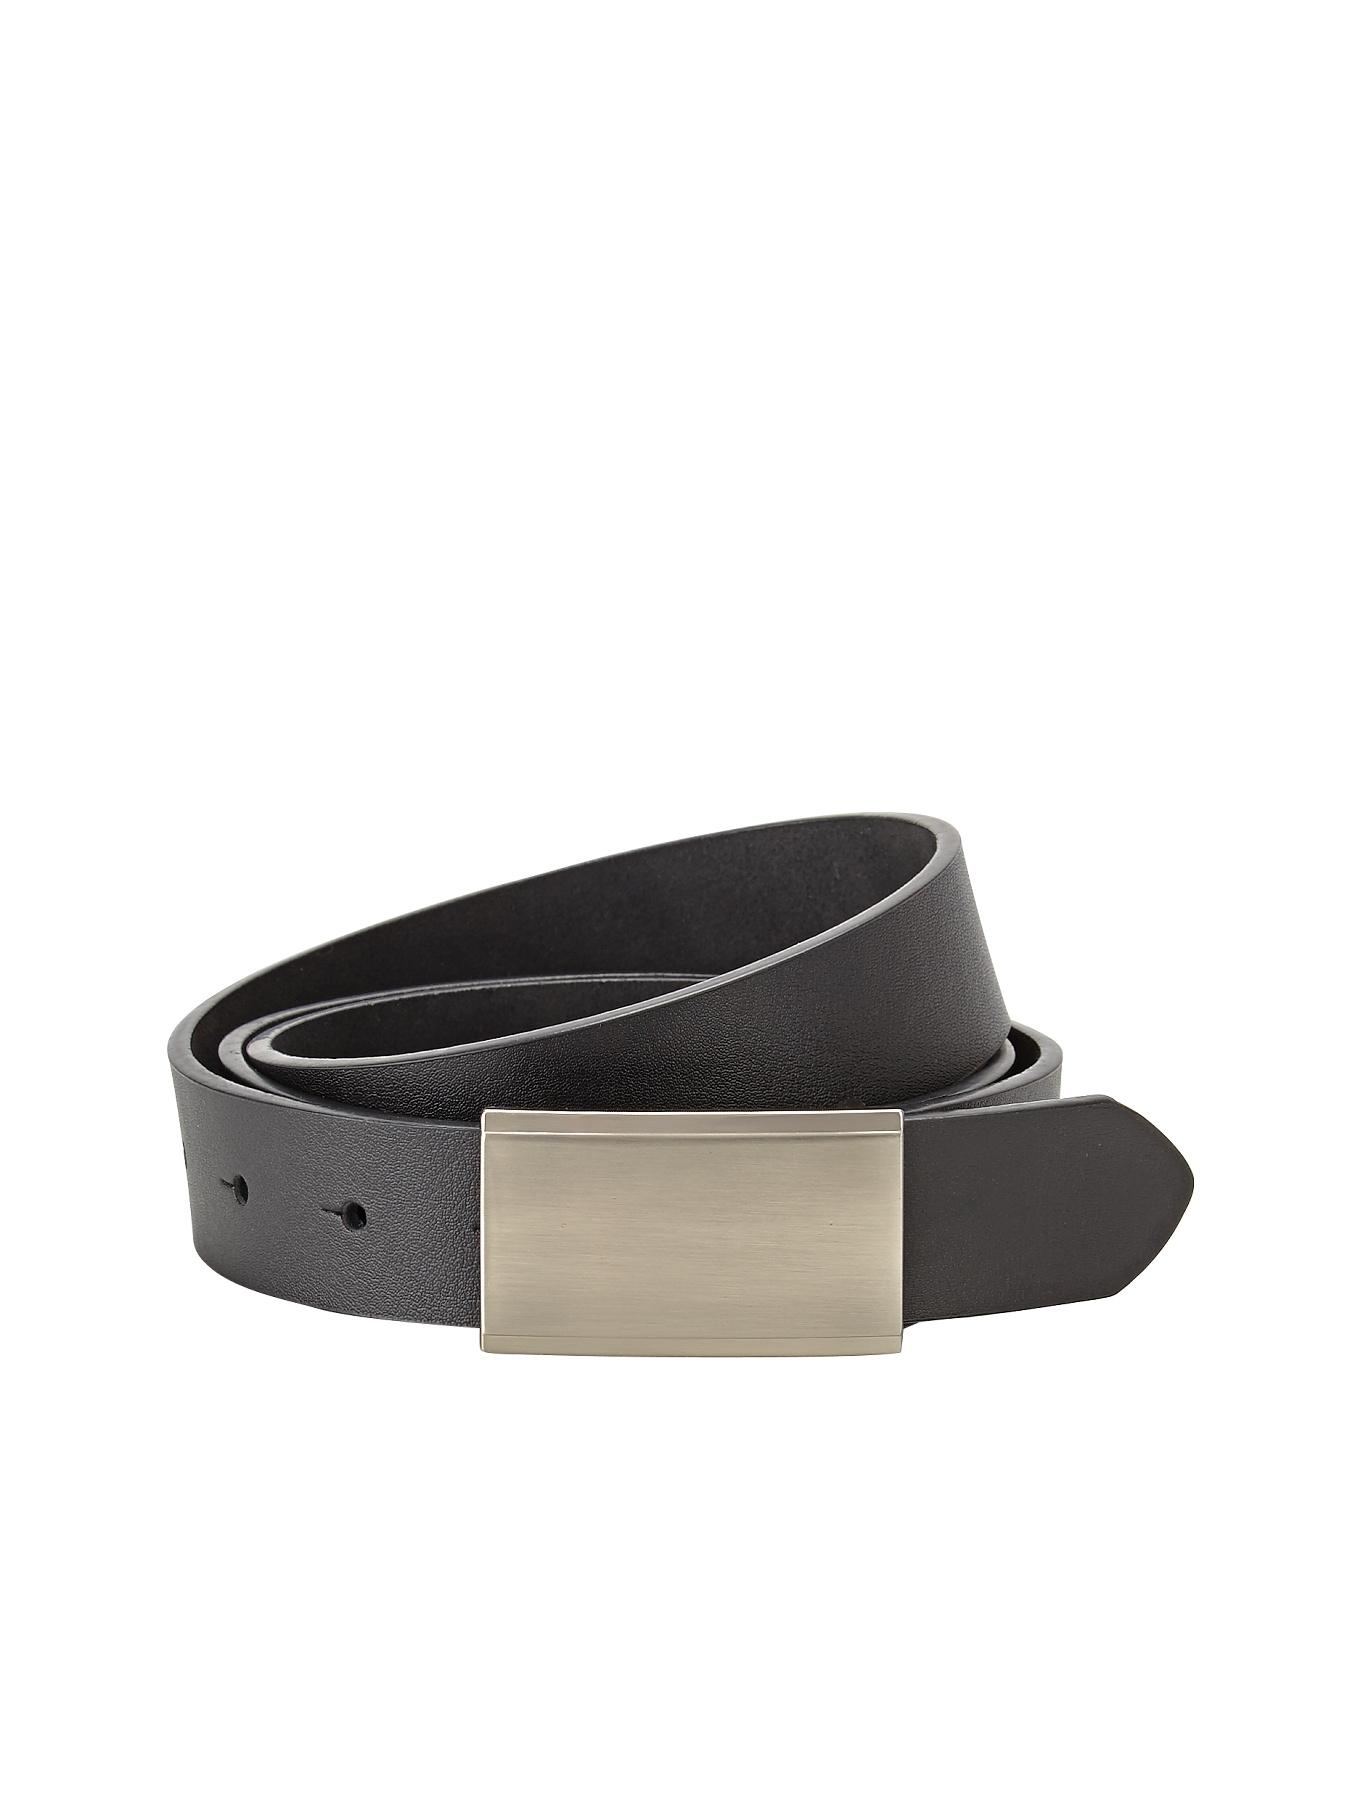 Mens Smart Leather Belt, Black,Brown